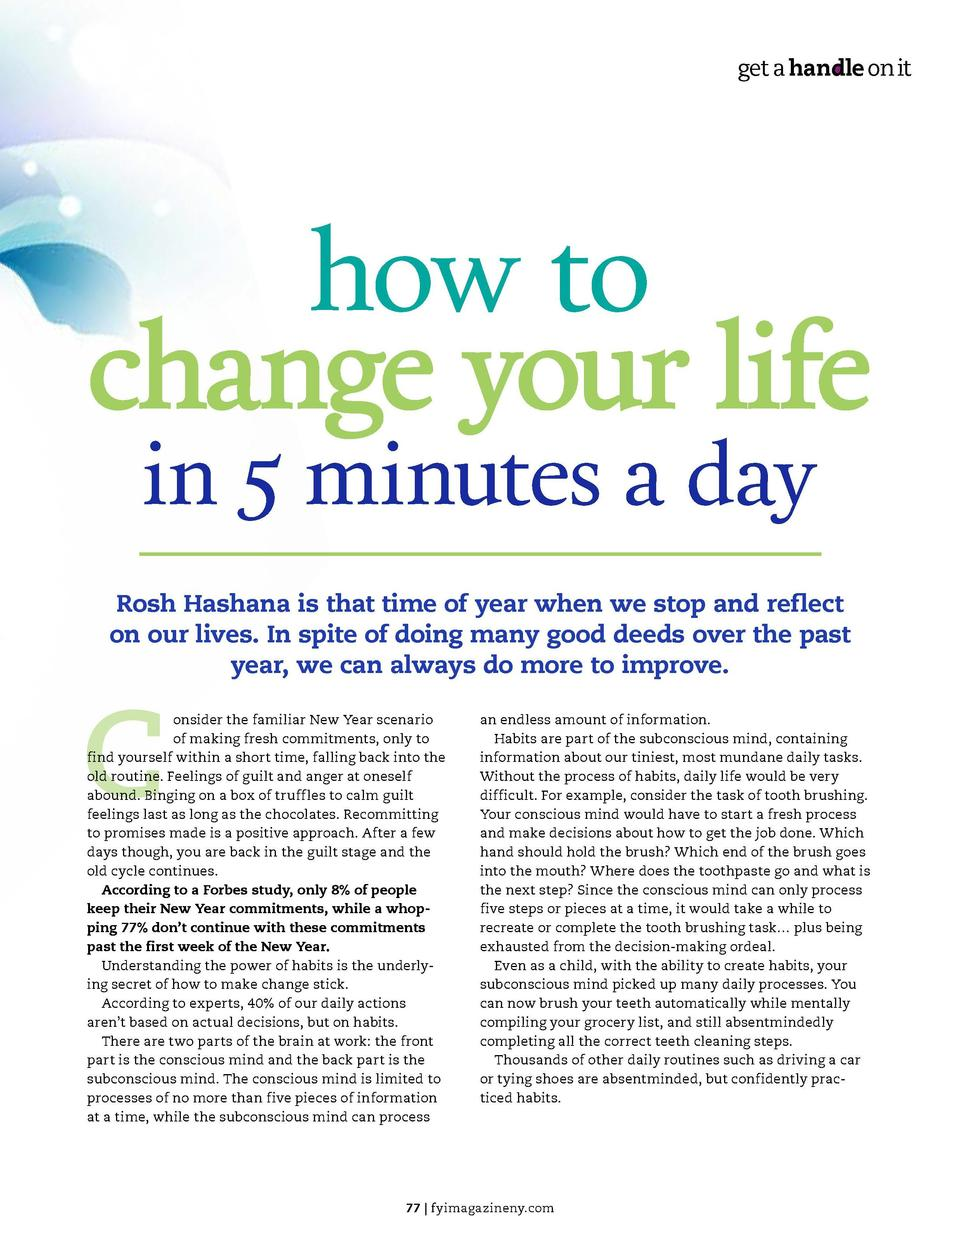 get a handle on it  get a handle on it  how to change your life in 5 minutes a day  Rosh Hashana is that time of year when...